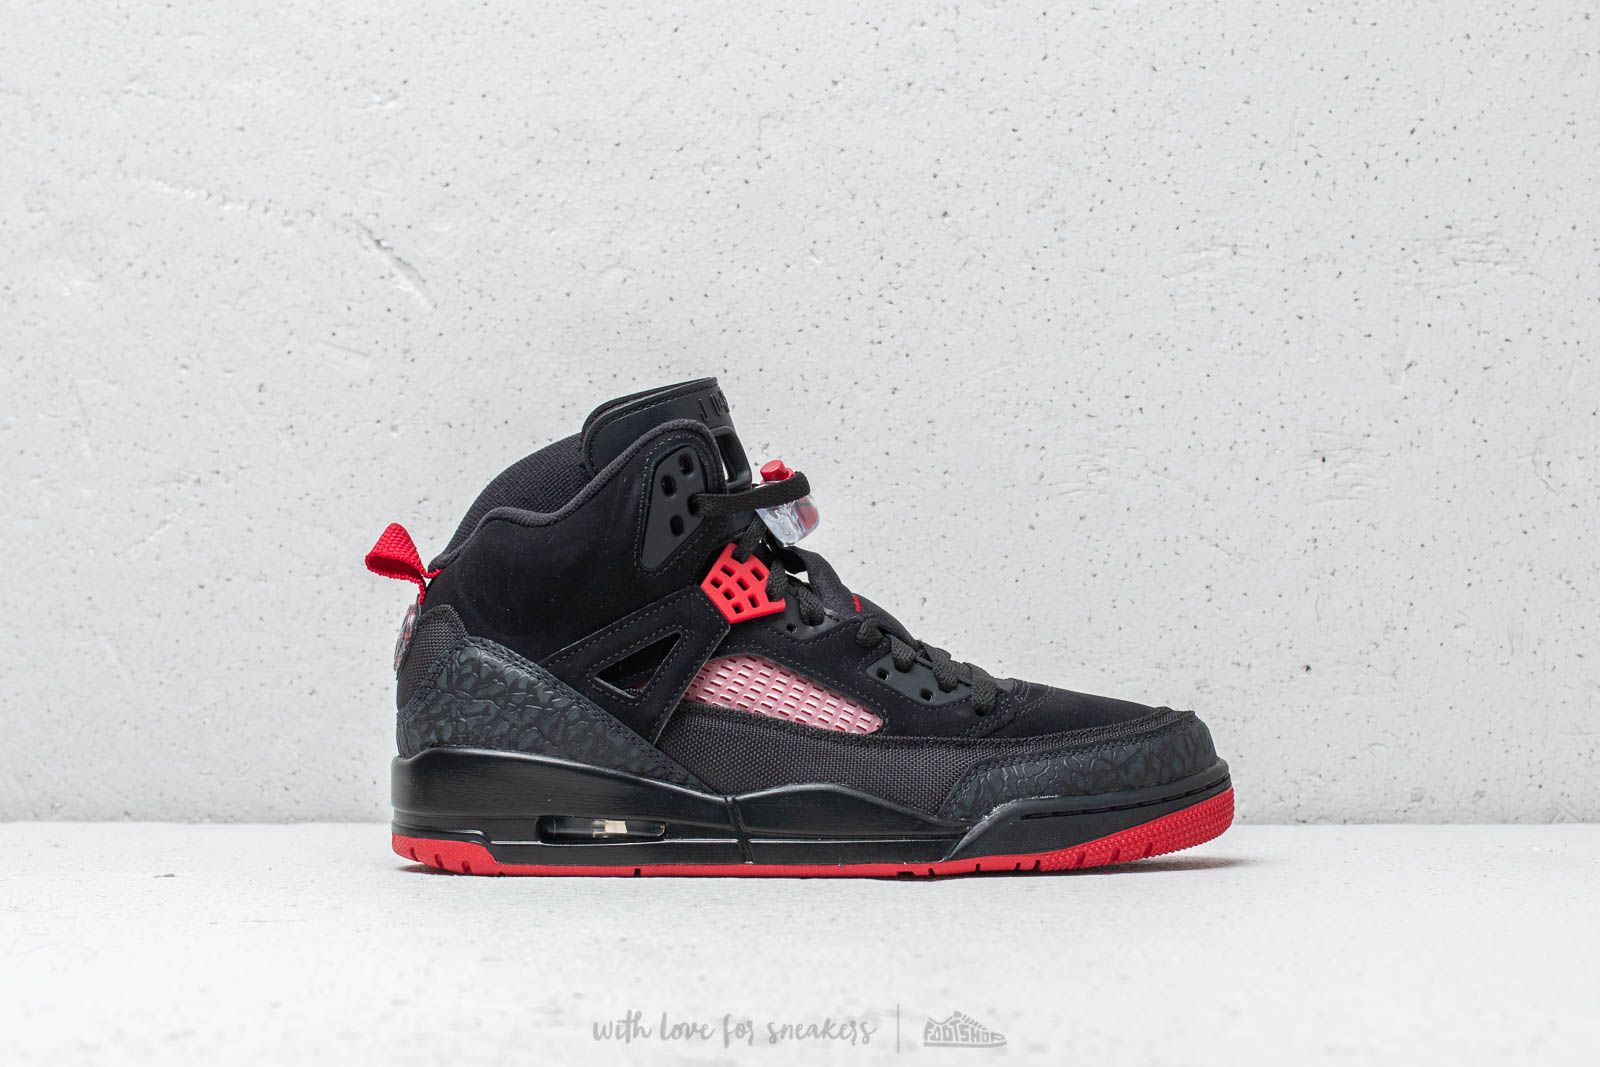 big sale 84887 66a1c Air Jordan Spizike Black  Gym Red-Antracite at a great price 158 € buy